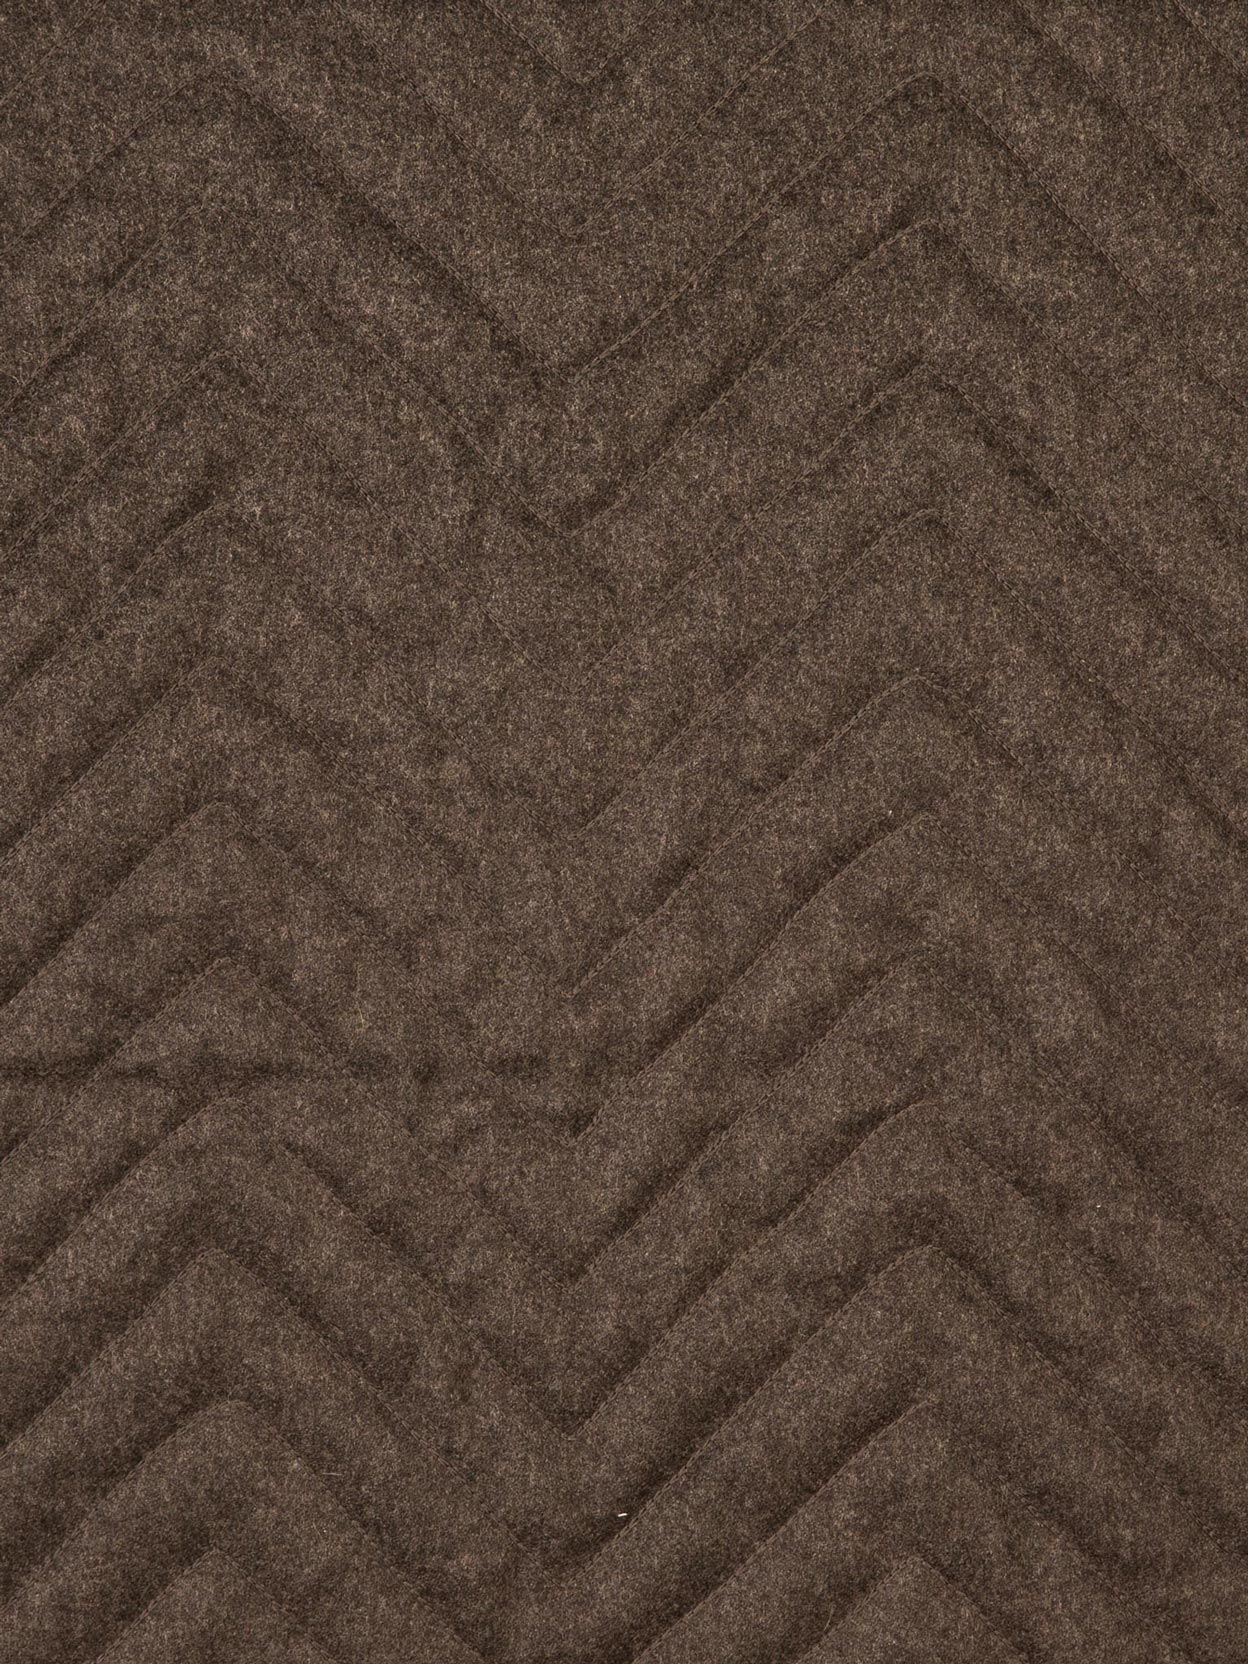 QUILTED CHEVRON DE11397/Q